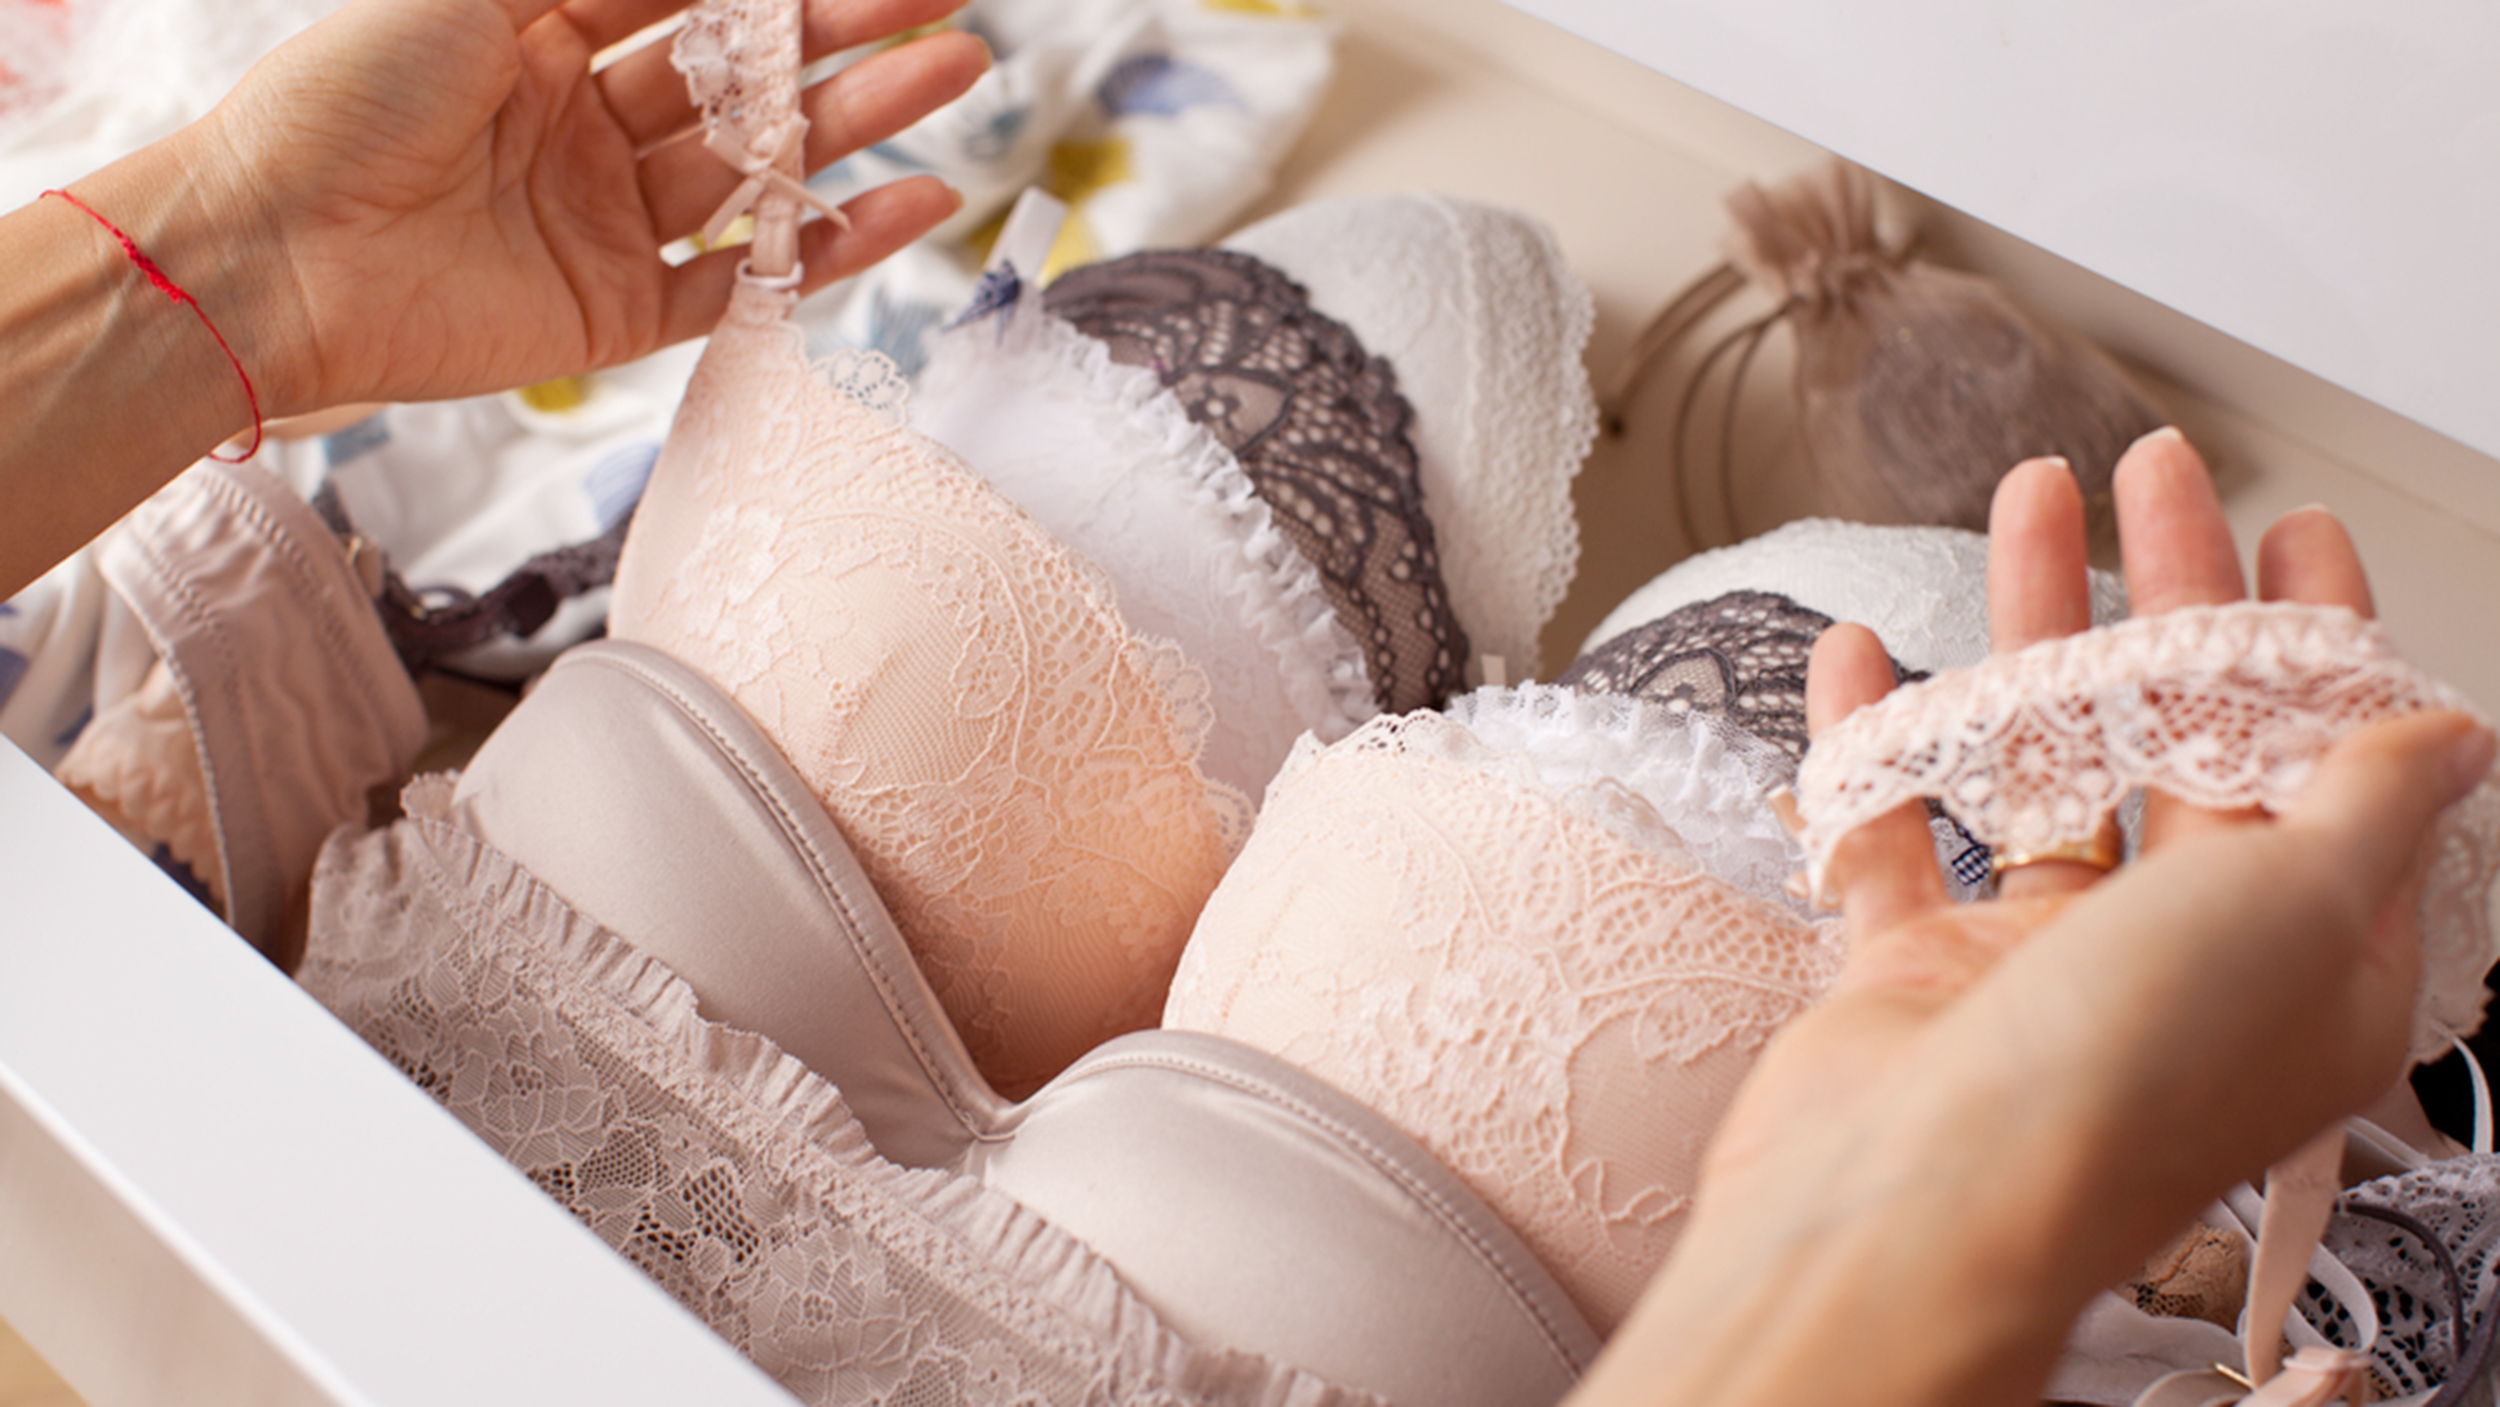 She cut an old bra and got the thing needed by almost every girl